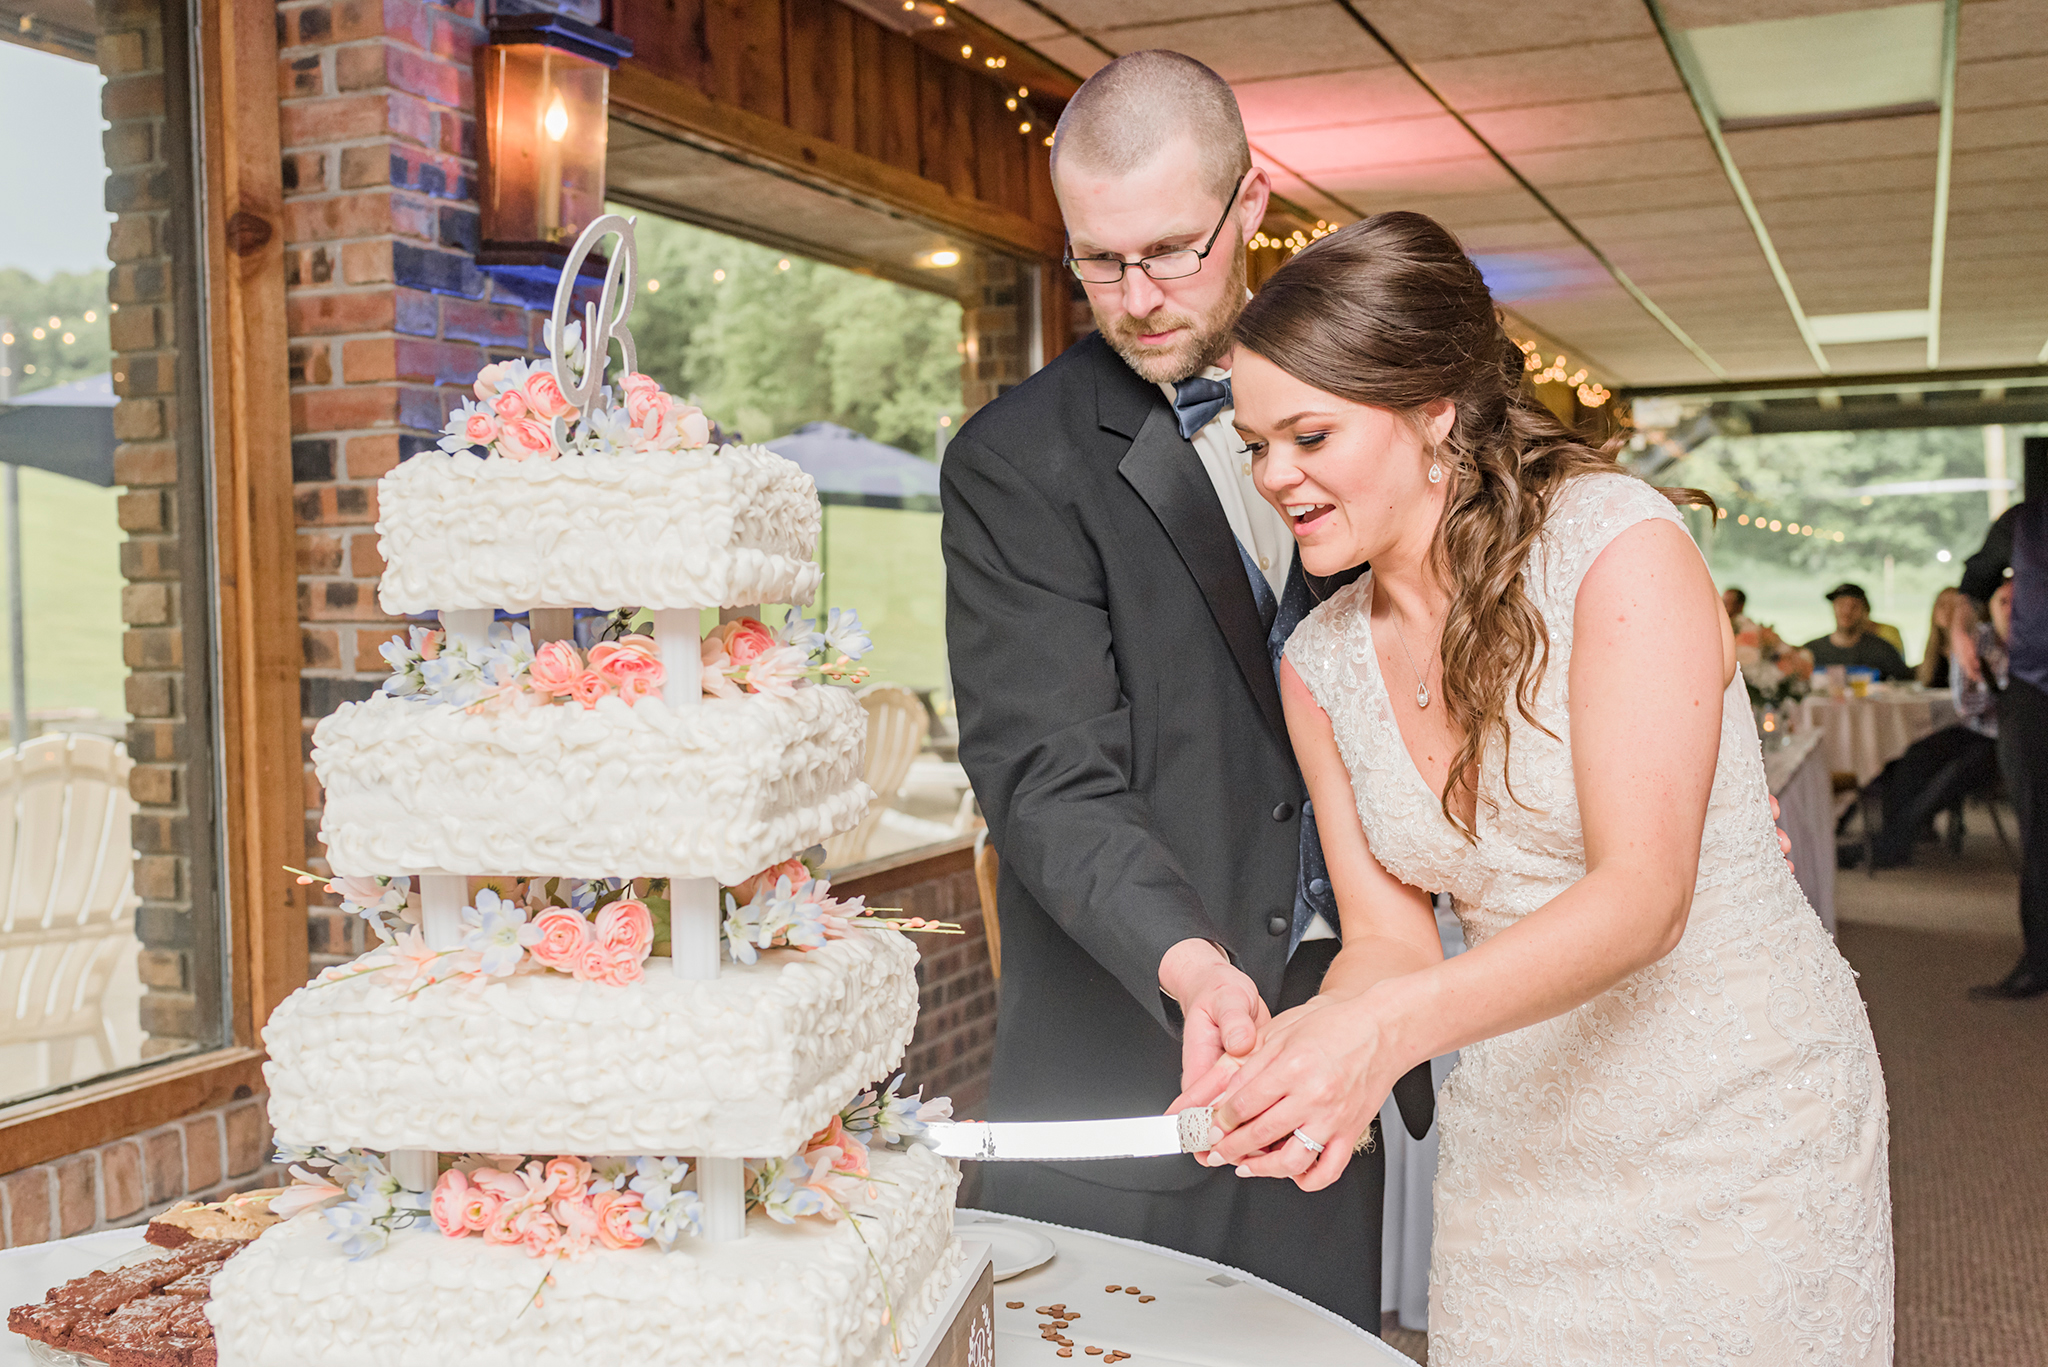 Lindsay-Adkins-Photography-Michigan-Wedding-Photographer-Sauk-Valley-Brooklyn-Michigan47